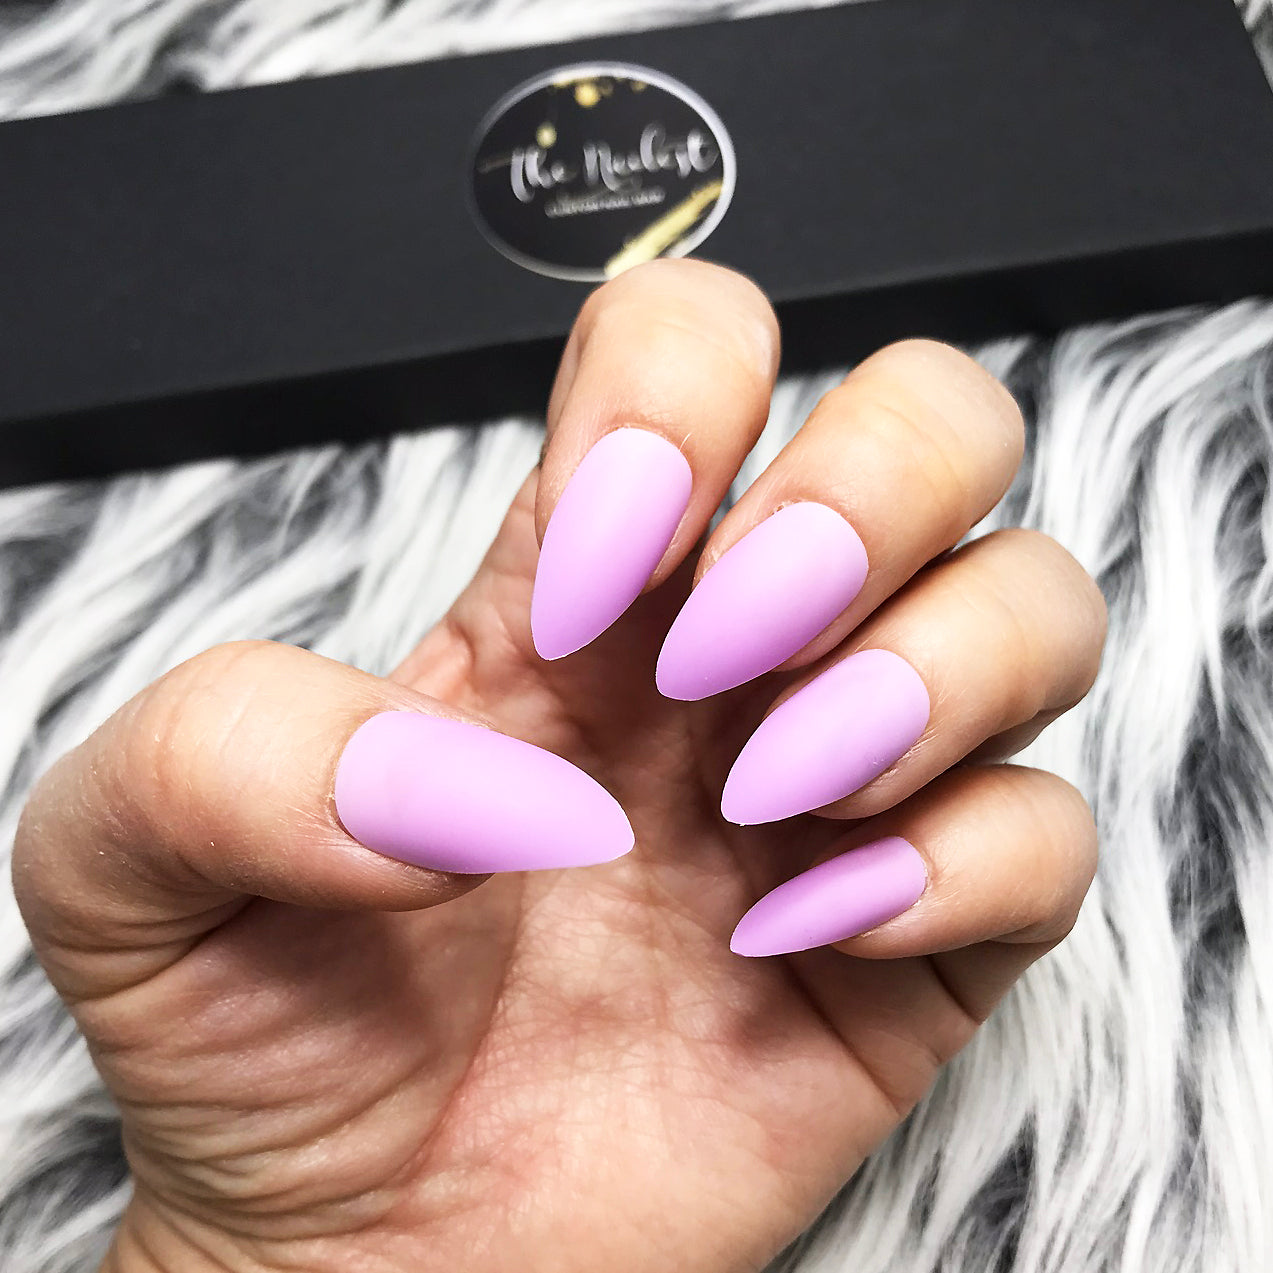 INSTANT GLAM-SOLID MATTE BABY PURPLE STILETTO SET